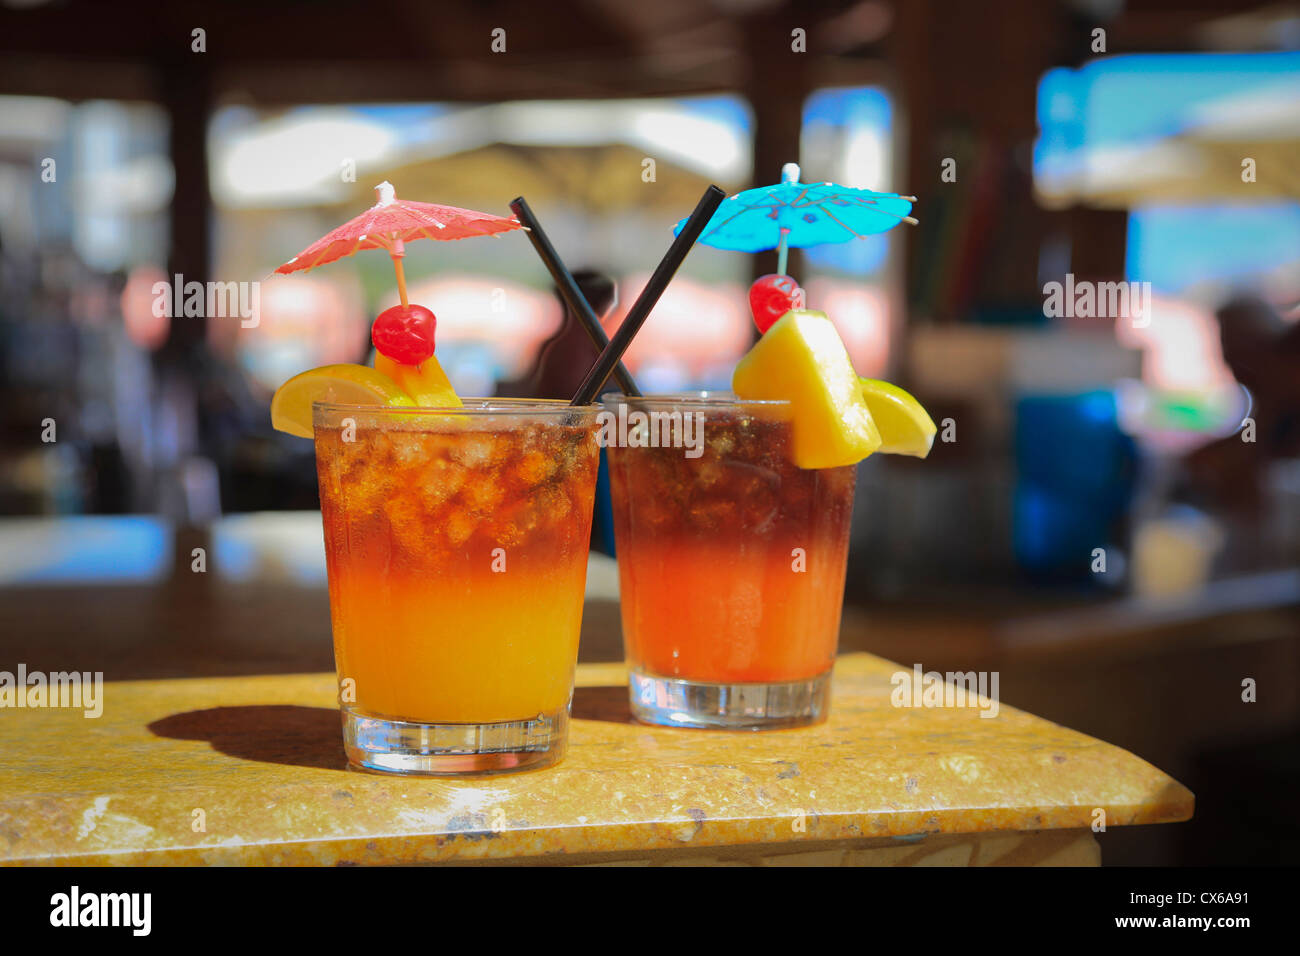 Mai Tai Bar, Royal Hawaiian Hotel, Waikiki, Honolulu, Oahu, Hawaii - Stock Image